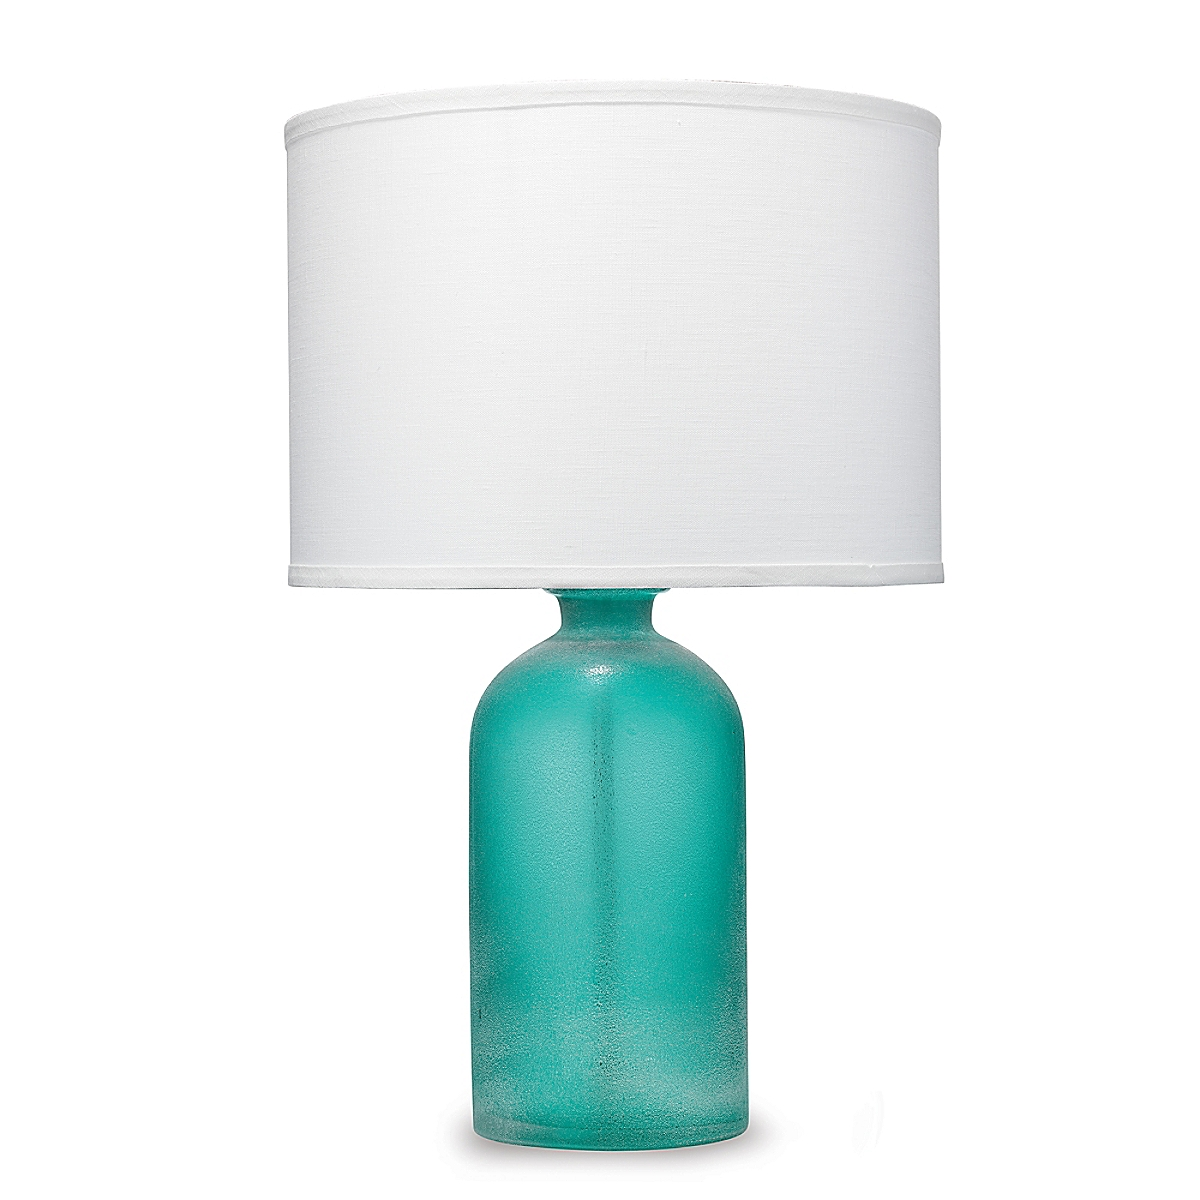 table seaside ocean sky aqua colors in australia bucolic ceramic shade and this glass lamp turquoise merge earth